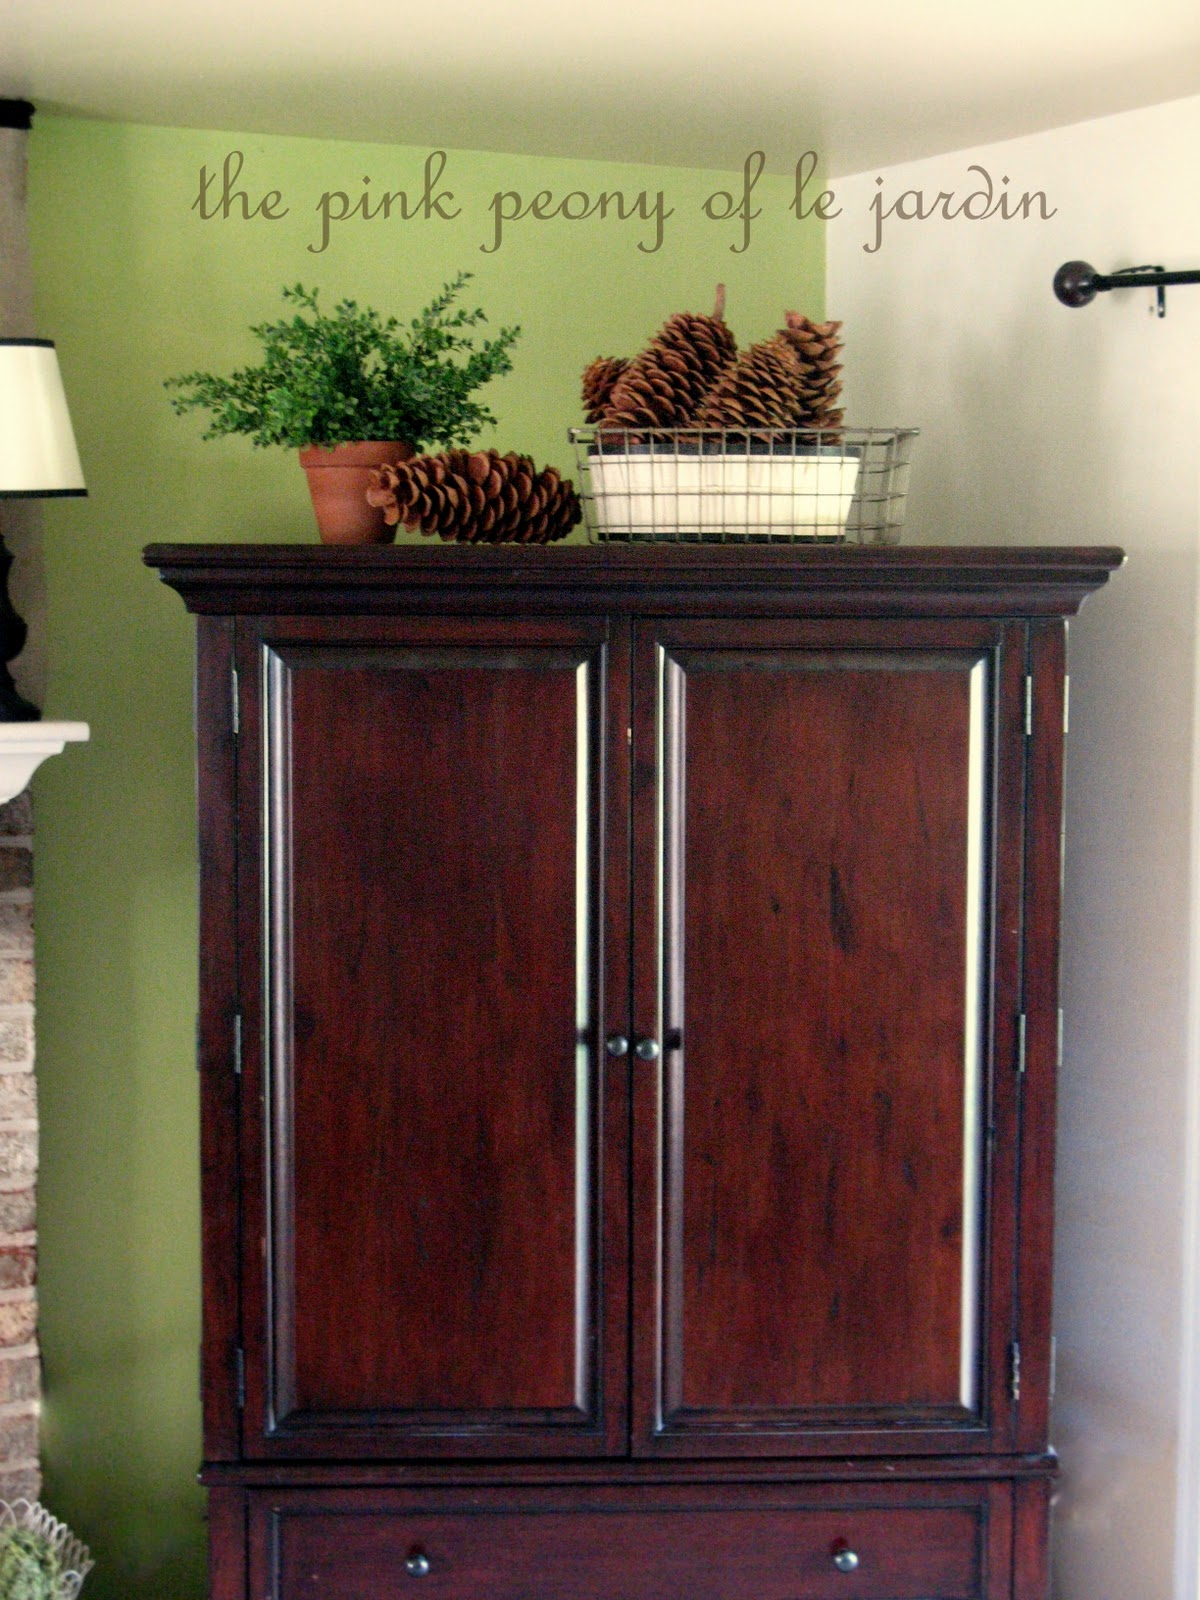 Decorate Top Of Armoire 28 Images Designing Home Thoughts On Decorating The Top Of An